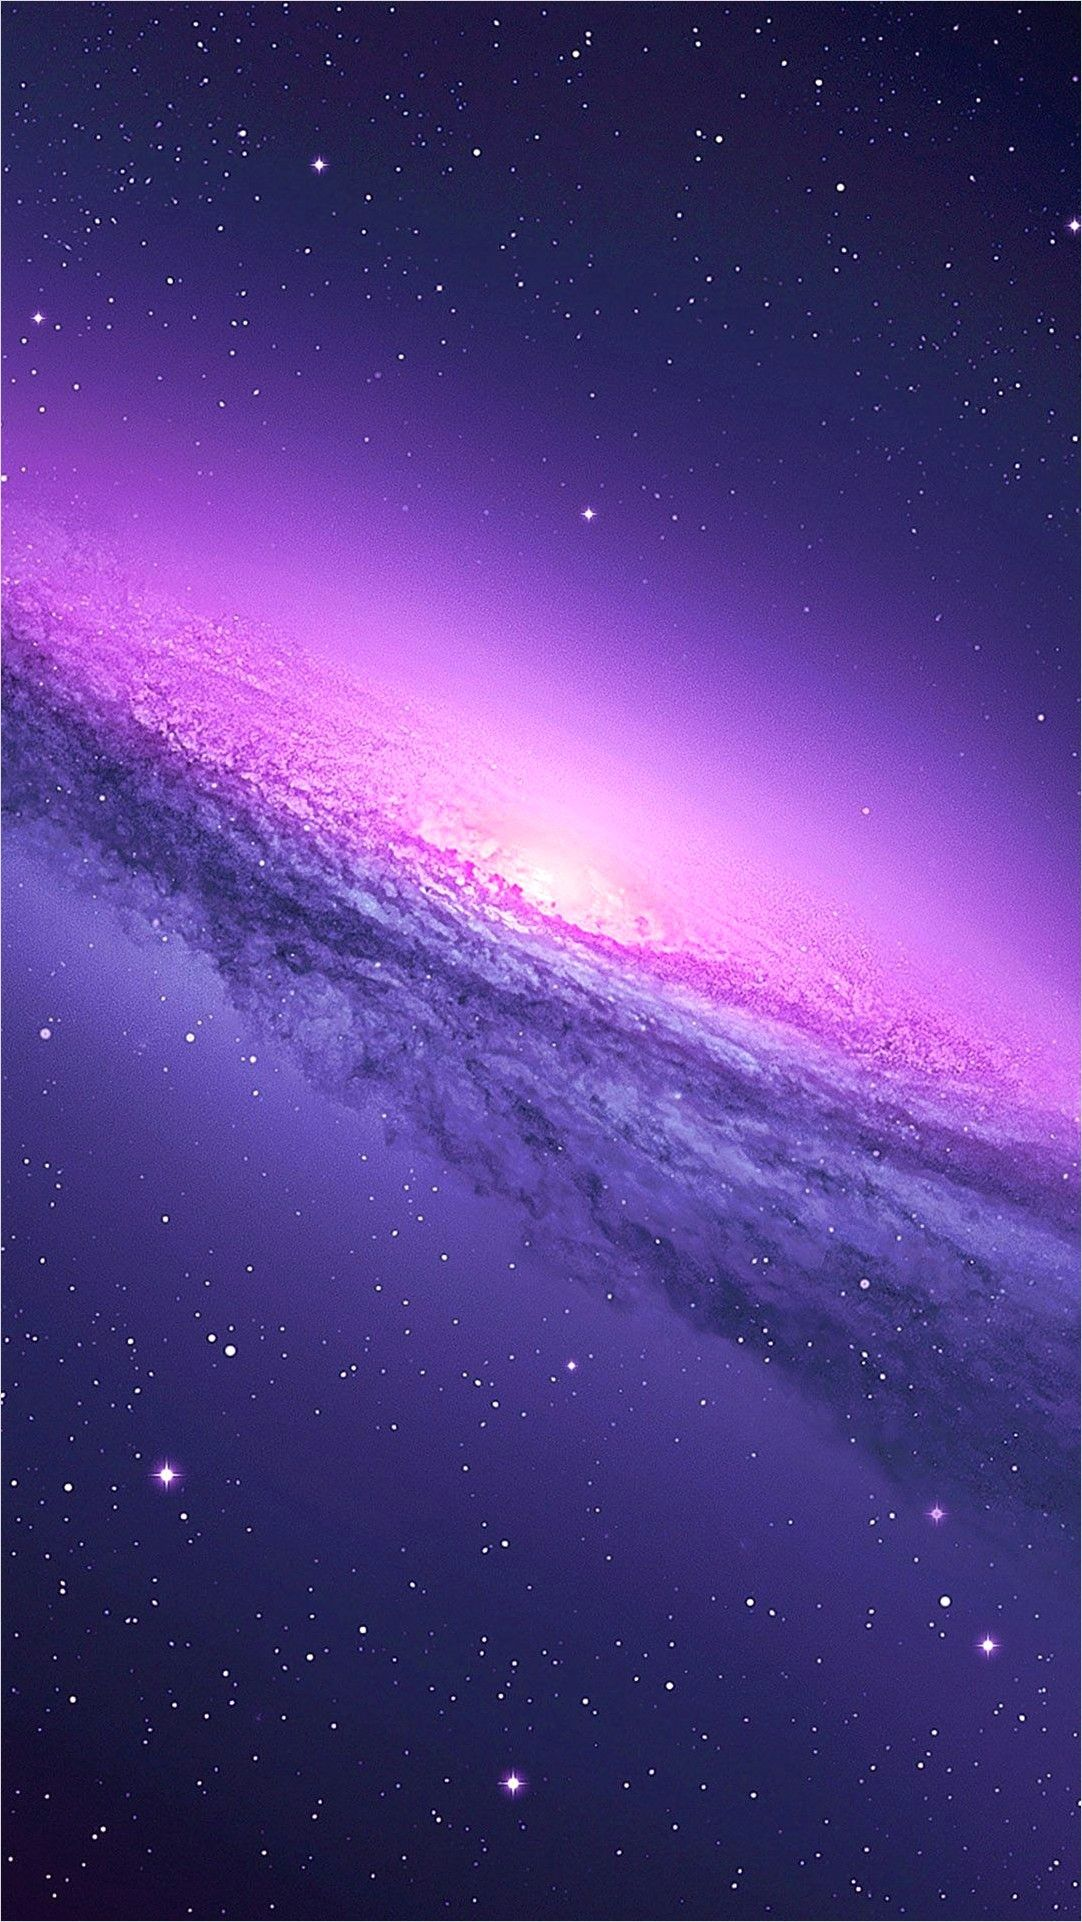 1080 X 1920 Pixels 4k Wallpapers In 2020 Galaxy Wallpaper